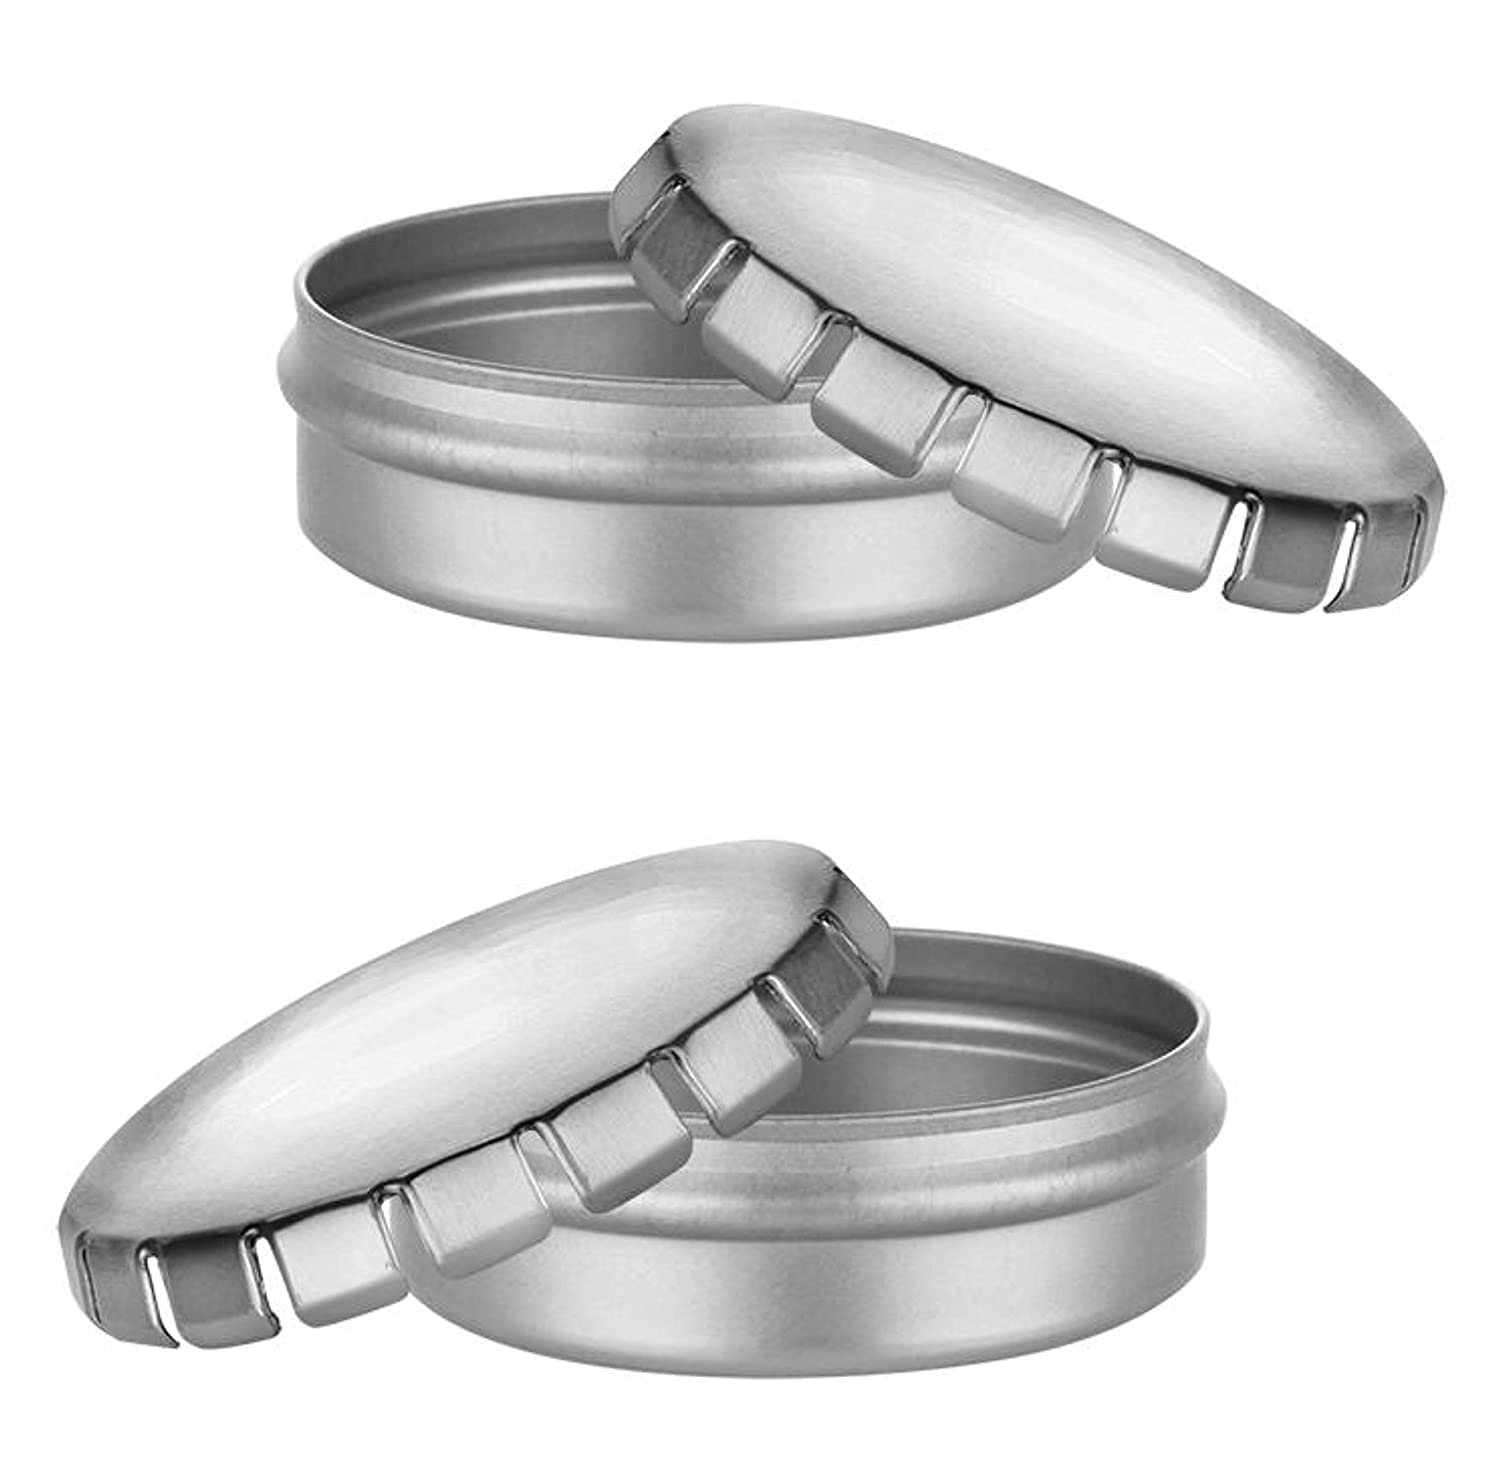 Small Round Silver Metal Tins 1 oz Containers for Crafts by MagnaKoys® (pack of 3) MagnaKoys® MK-2971-3